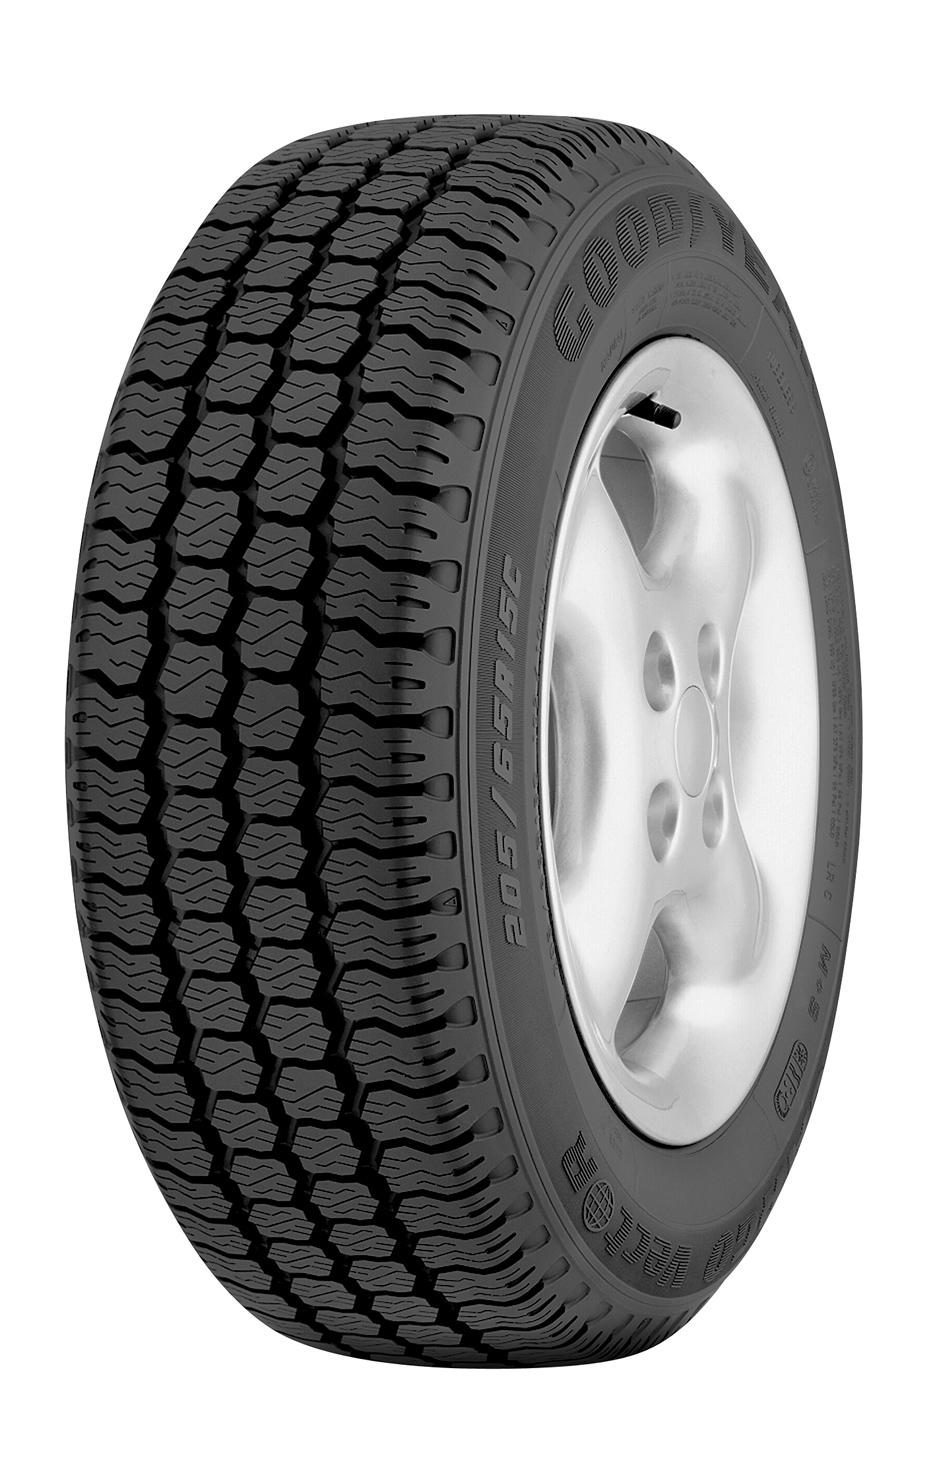 GOODYEAR CARGO VECTOR RE3 195/75 R16 107/105R